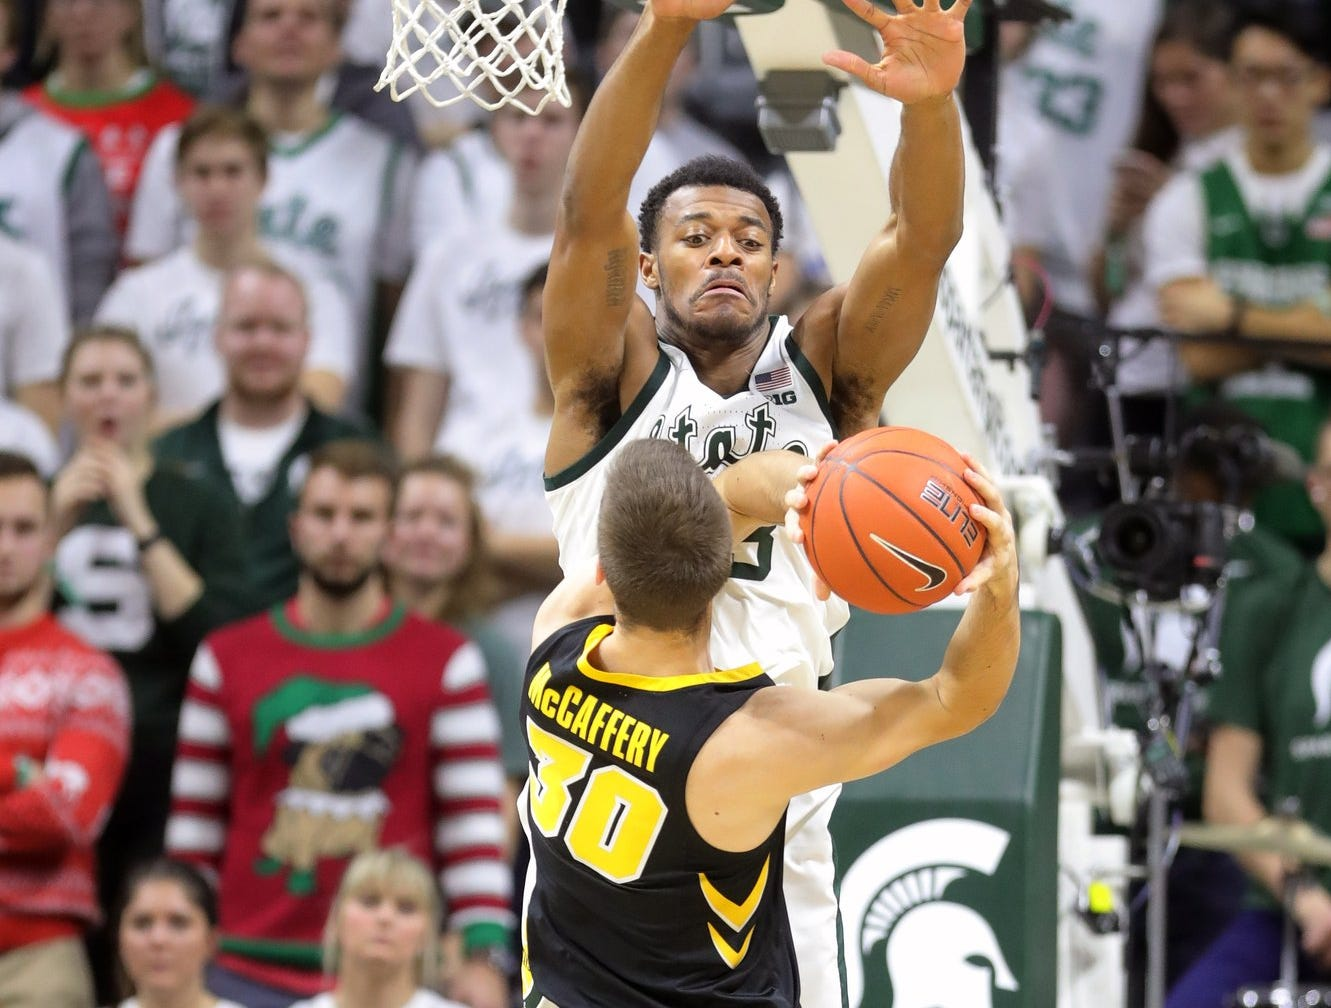 Michigan State forward Xavier Tillman defends against Iowa guard Connor McCaffery during second half action Monday, December 3, 2018 at the Breslin Center in East Lansing, Mich.